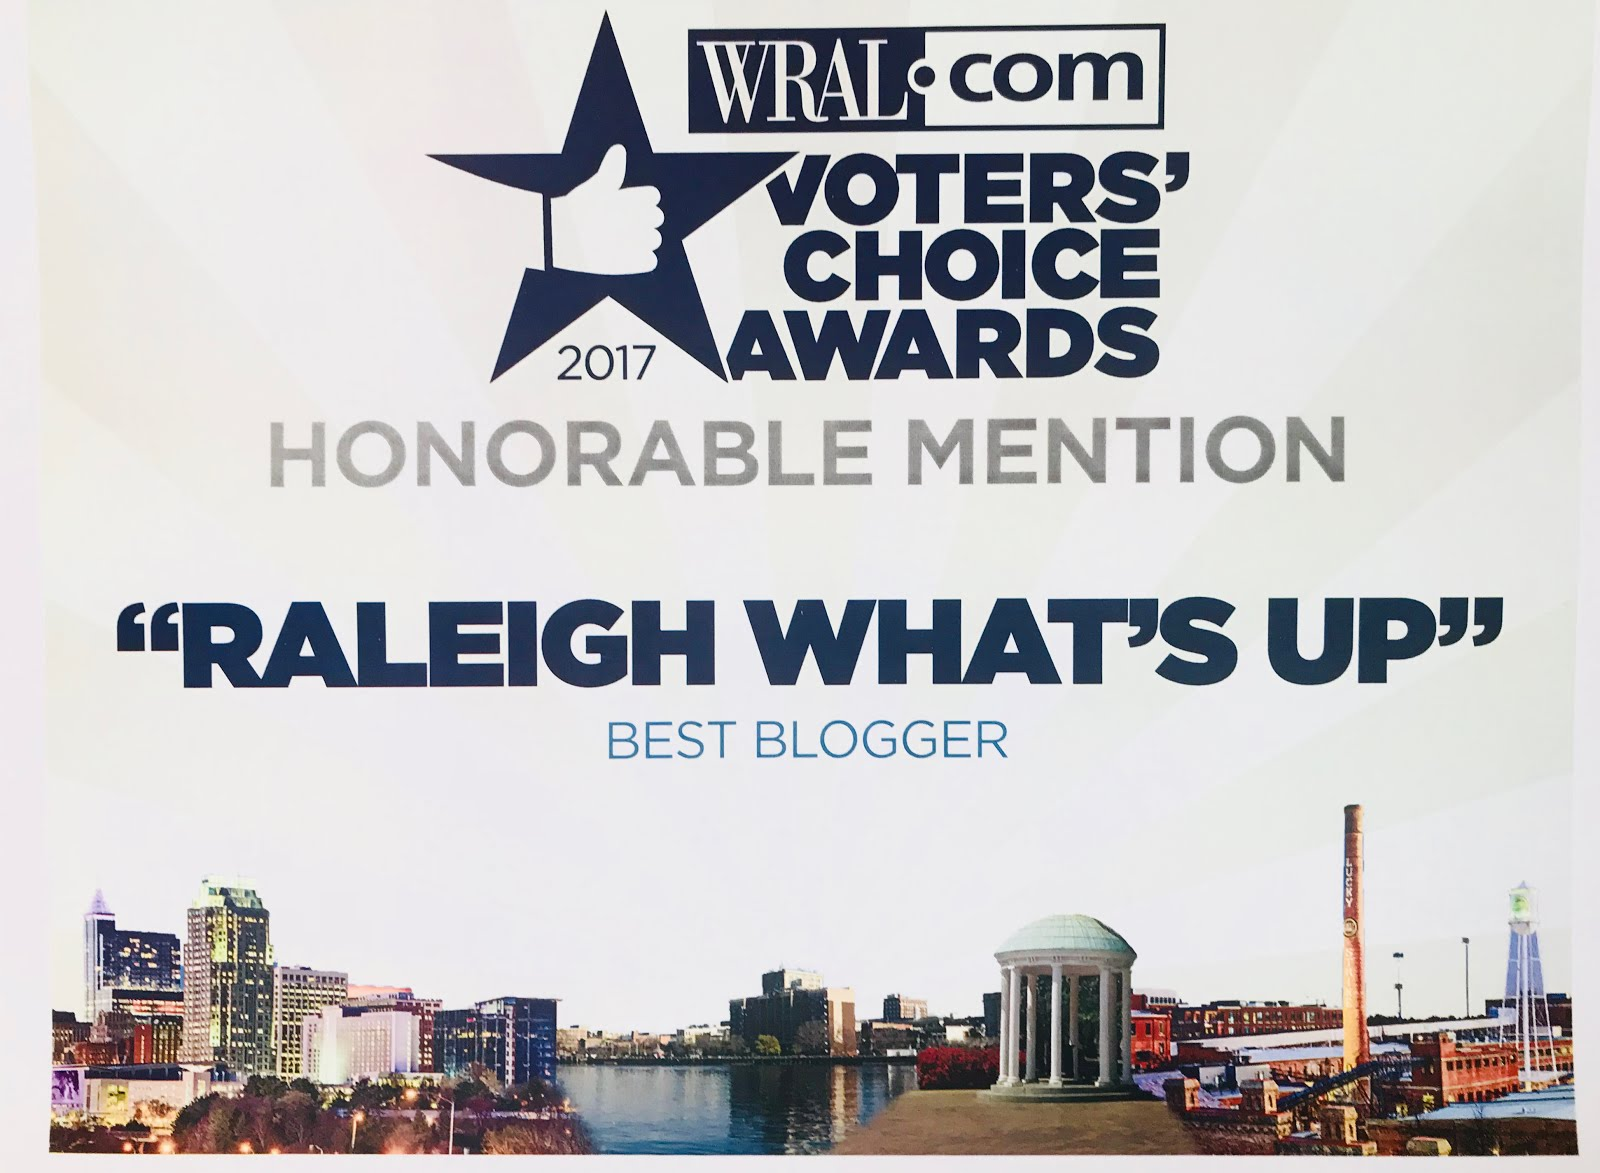 WRAL Voter's Choice Awards